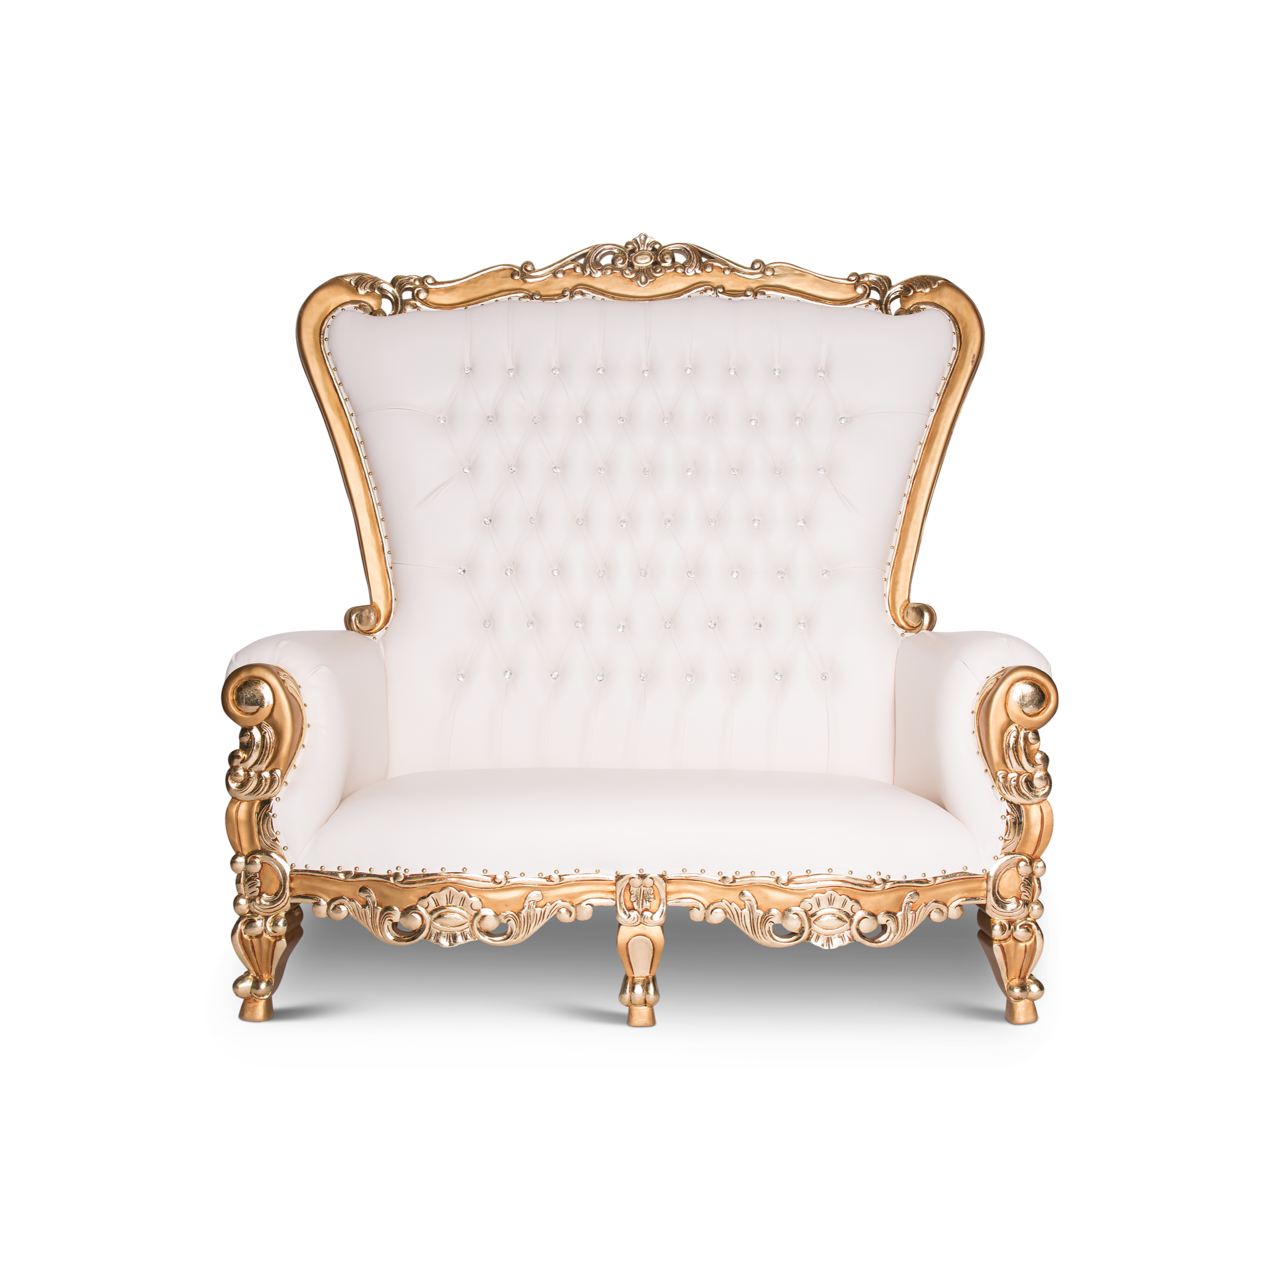 Awesome King Queen Chair Throne Rent Richmond V A Luxe Throne Dailytribune Chair Design For Home Dailytribuneorg